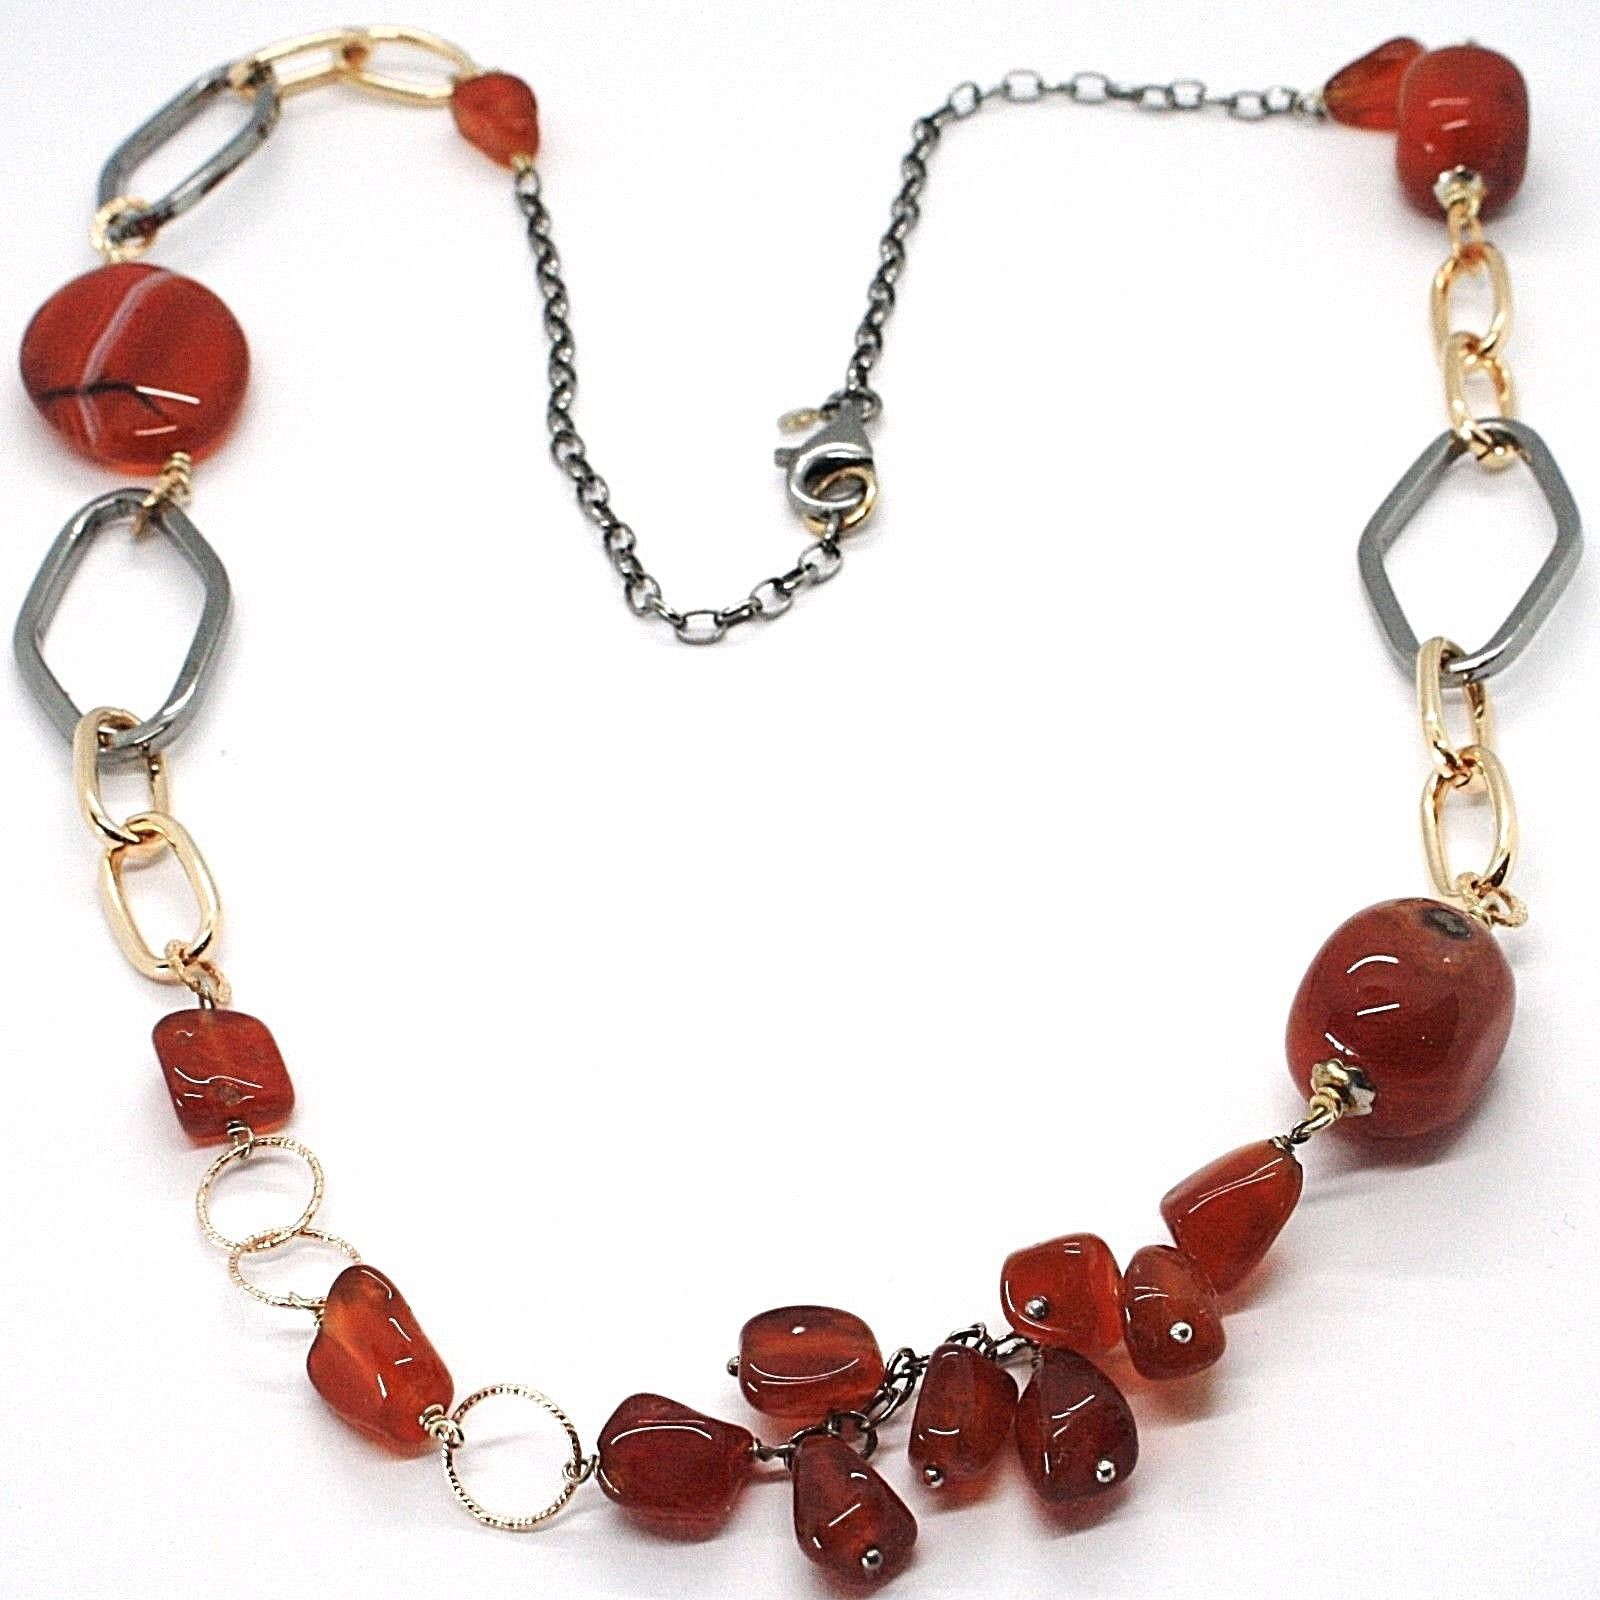 925 Silver Necklace, Burnished and Pink, Carnelian Red, Length 70 cm